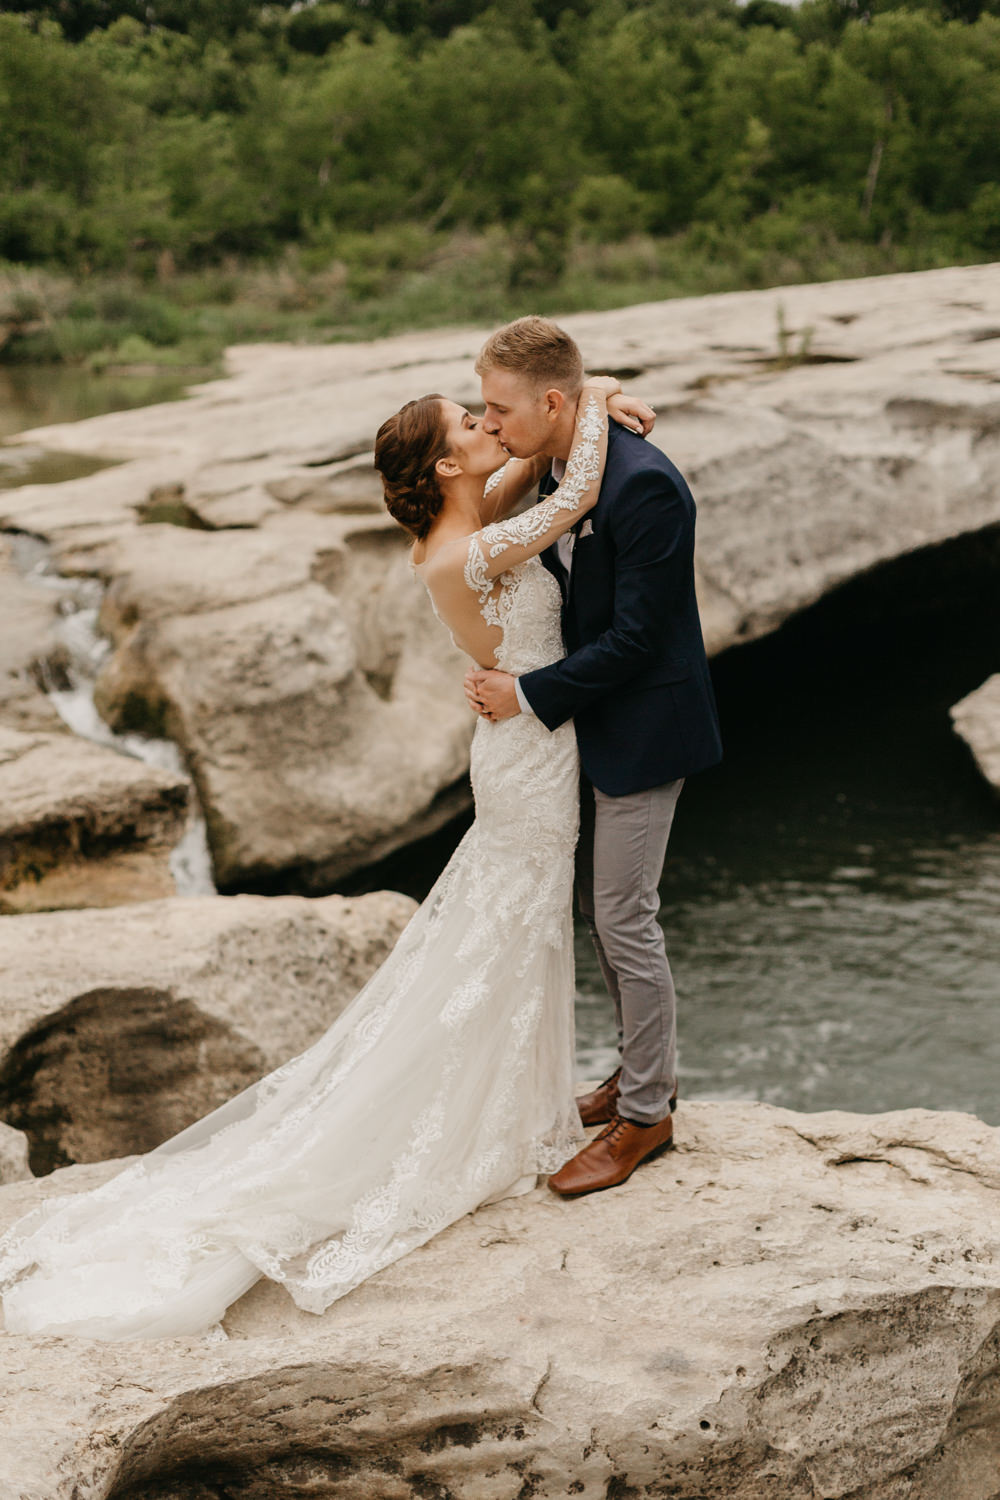 HaileyDylan_Austin Elopement Photographer Austin Wedding Photographer-130.jpg